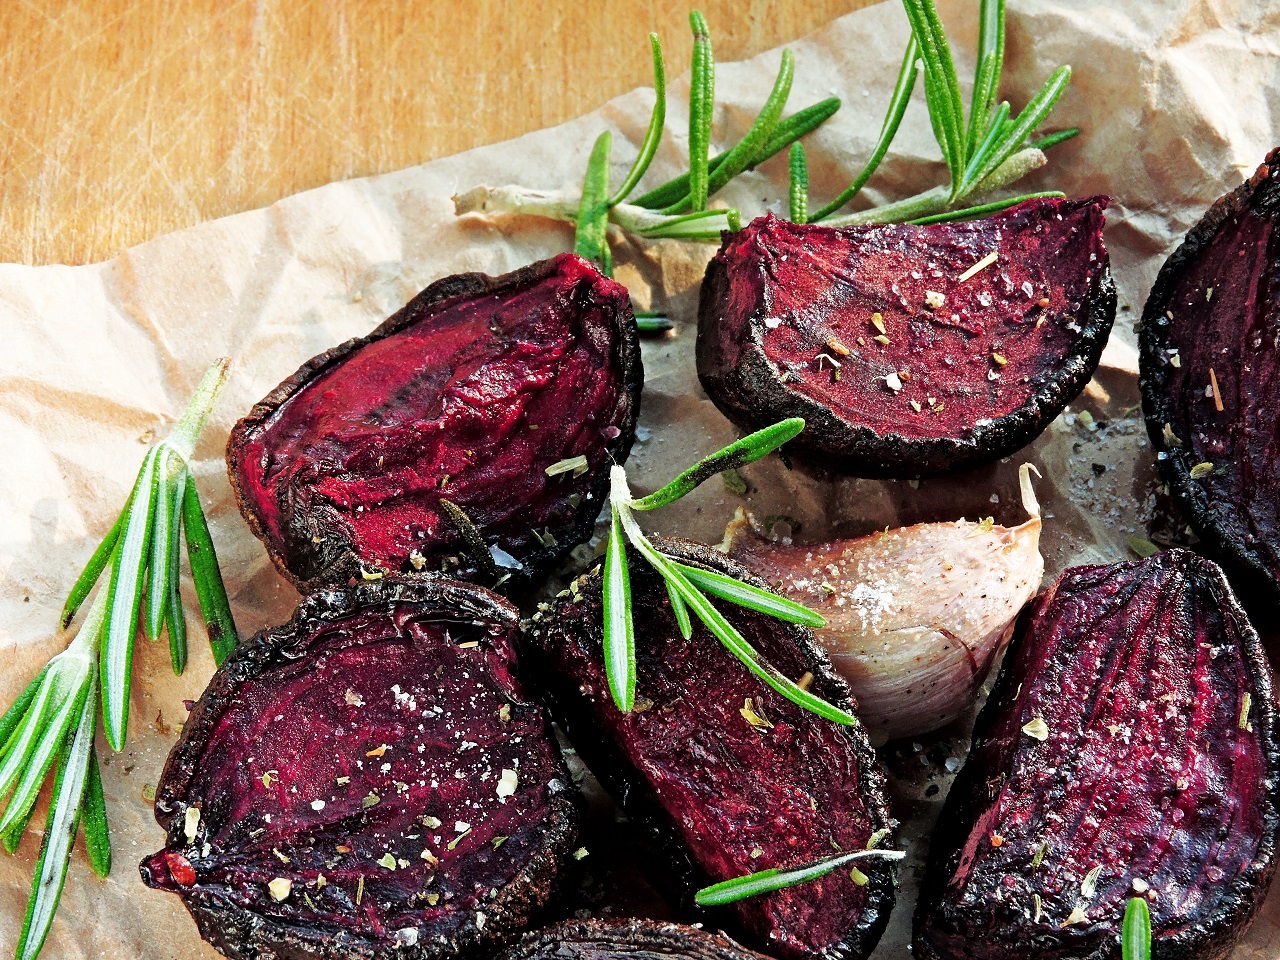 Beetroot-baked-with-garlic-and-rosemary